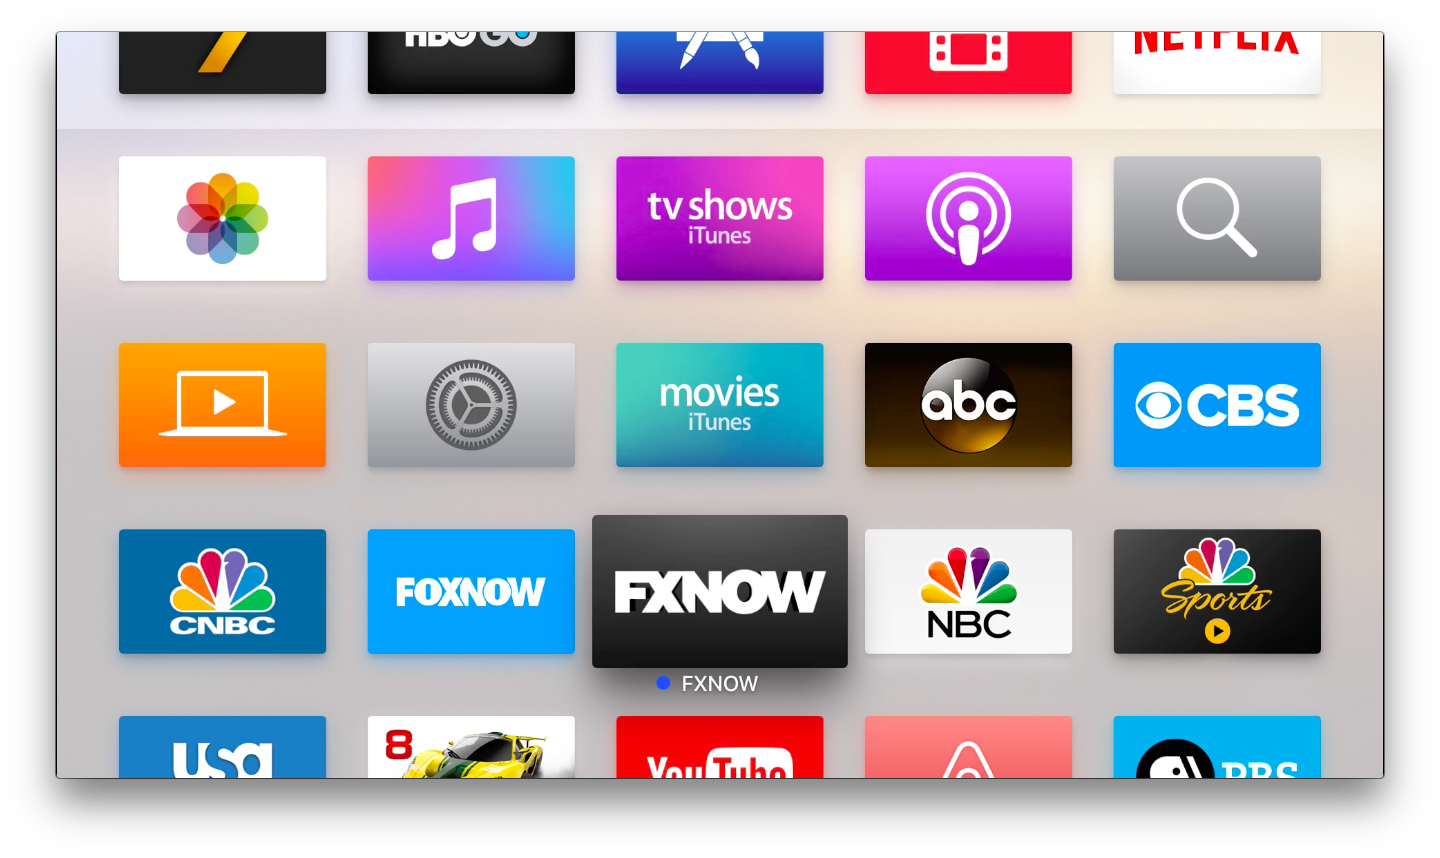 A view of the Apple TV home screen with apps